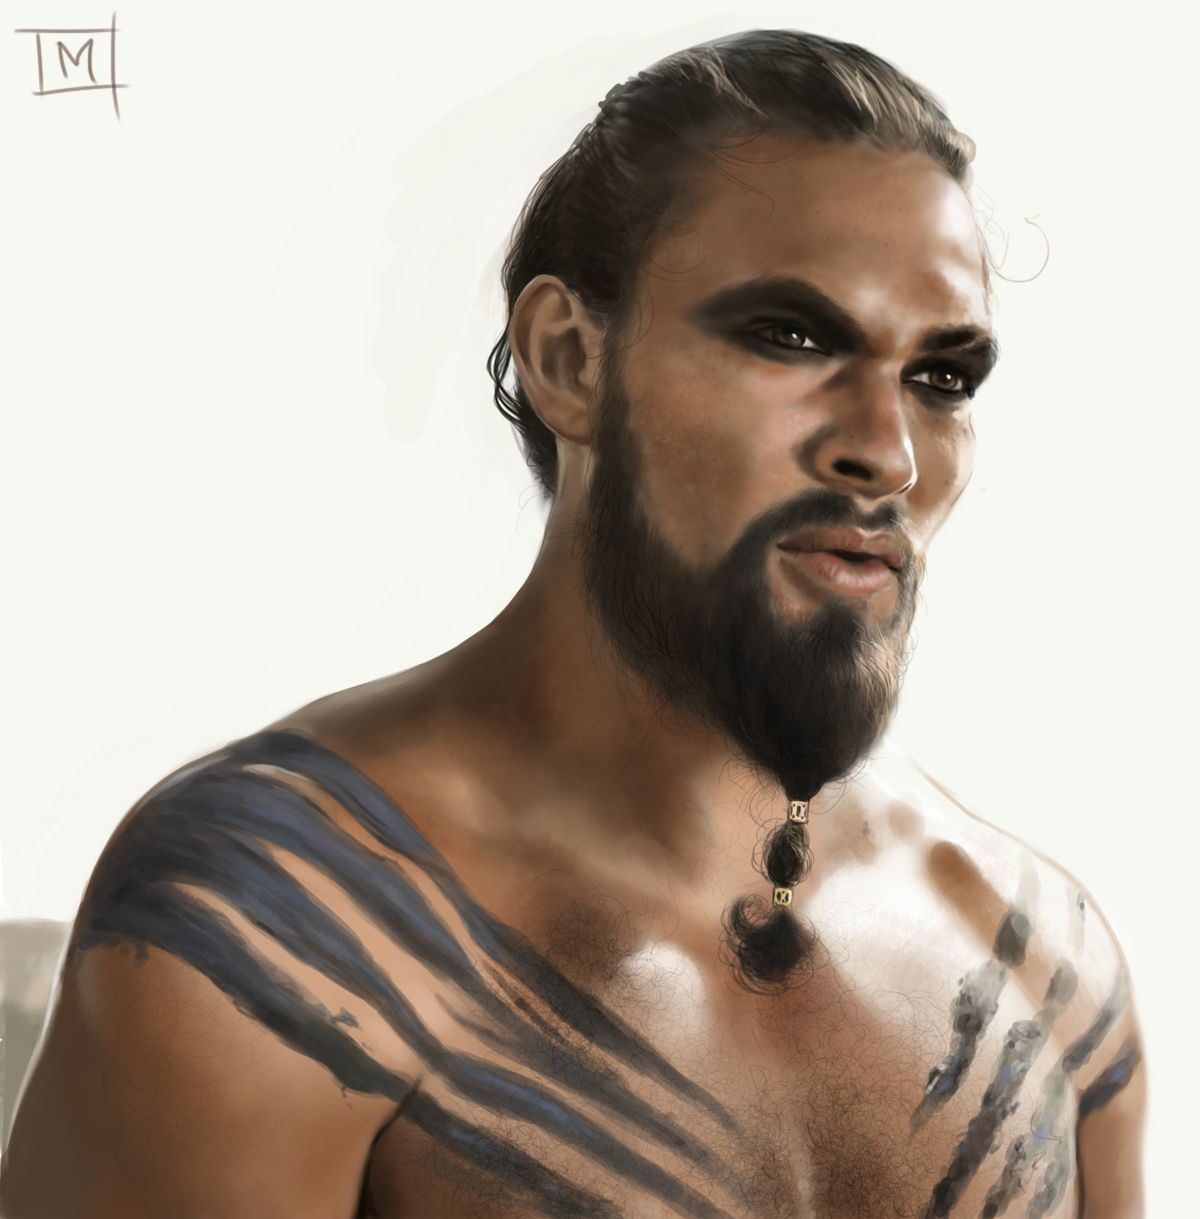 Khal Drogo Speedpaint By ArtByManon.deviantart.com On